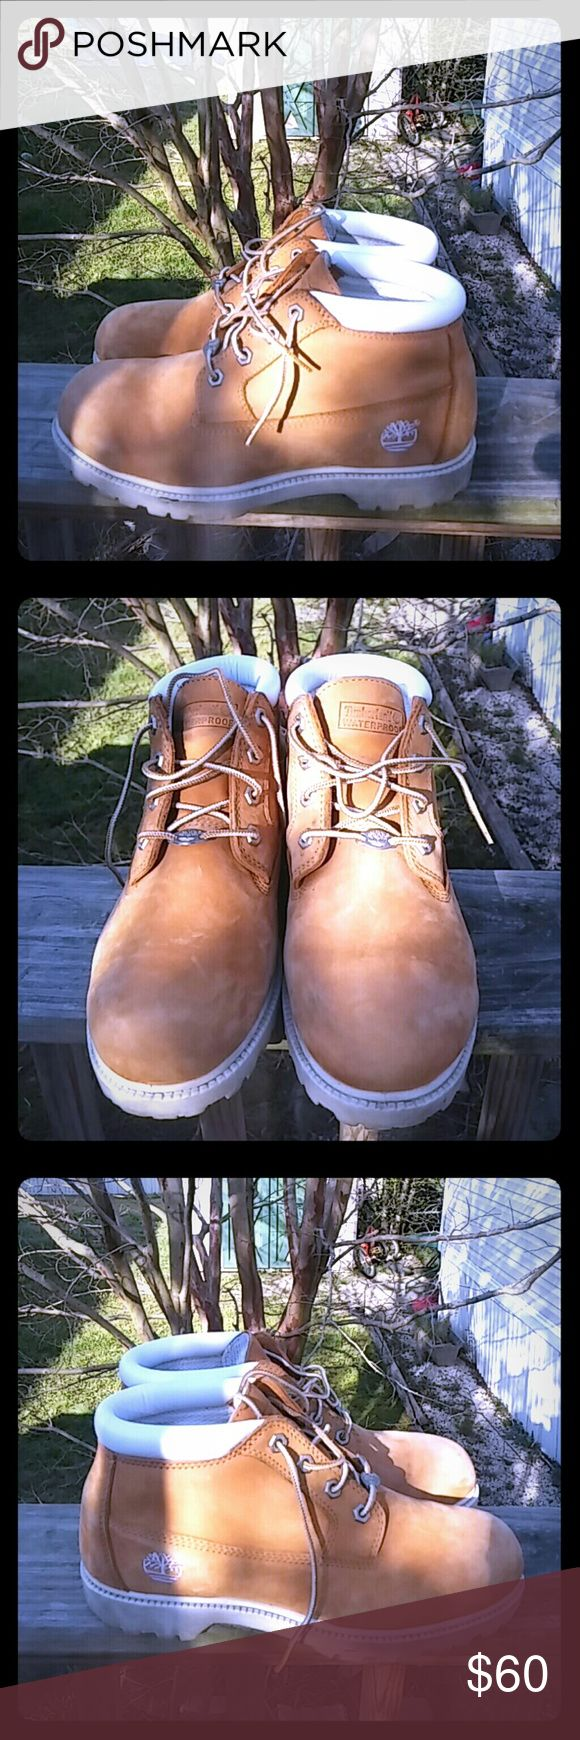 WOMENS WATERPROOF TIMBERLAND SZ 9.5 WOMENS WATERPROOF TIMBERLAND NELLIE CHUKKA DOUBLE SOLE MID BOOTS #23346-TAN 8.5M Timberland Shoes Lace Up Boots